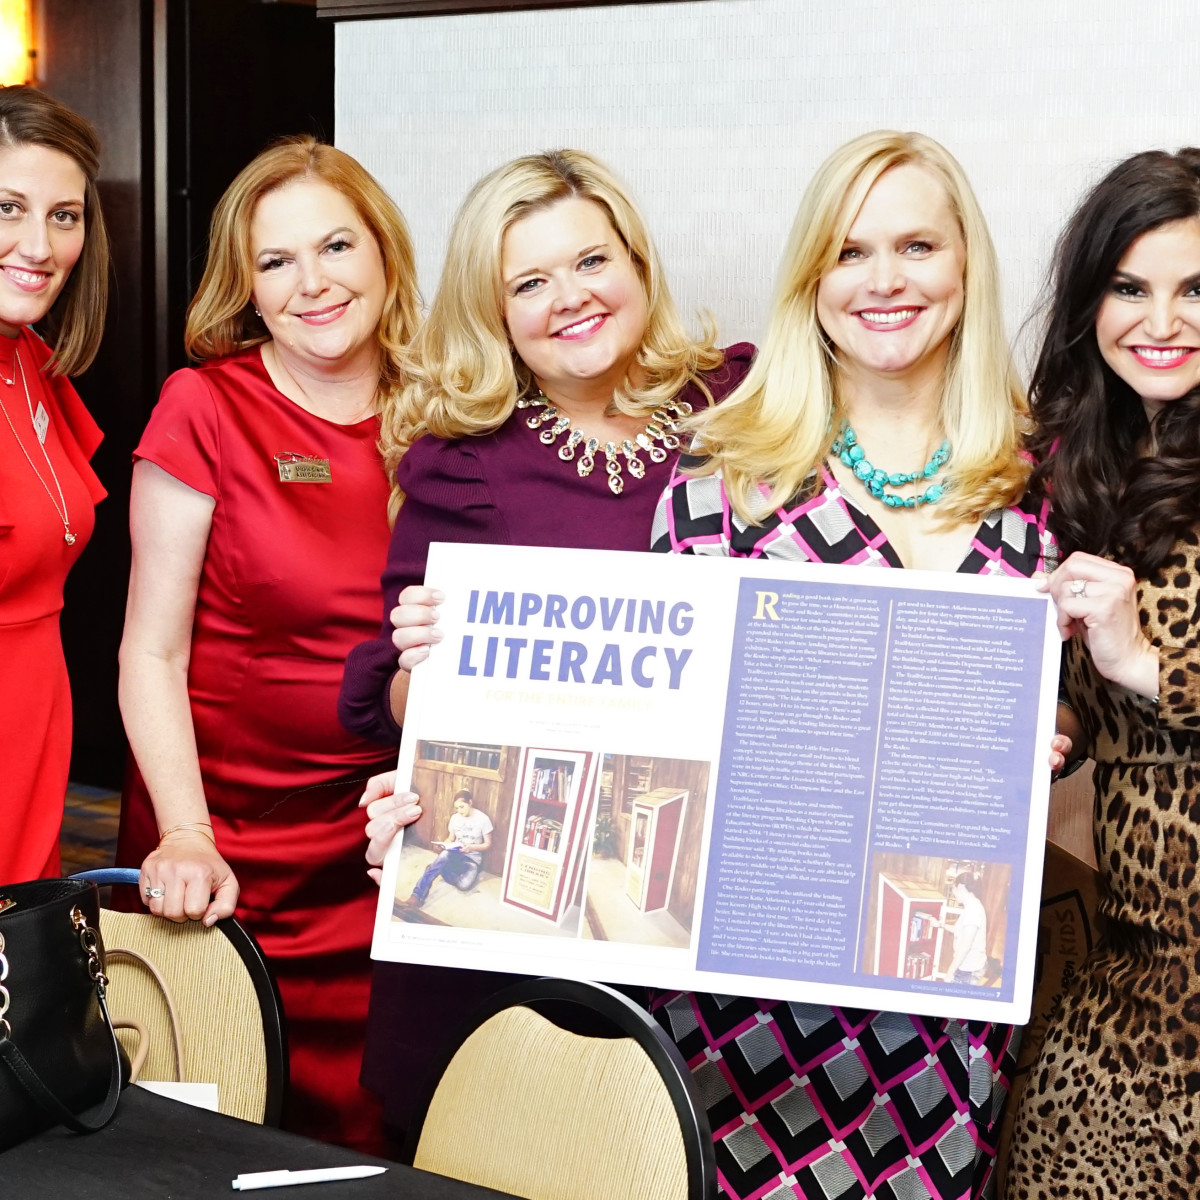 Rodeo Trailblazer Awards Luncheon 2020 Lauren Wasson, Mickie Clark, Ann Massey, Jill Lack, Nadia Knutzen